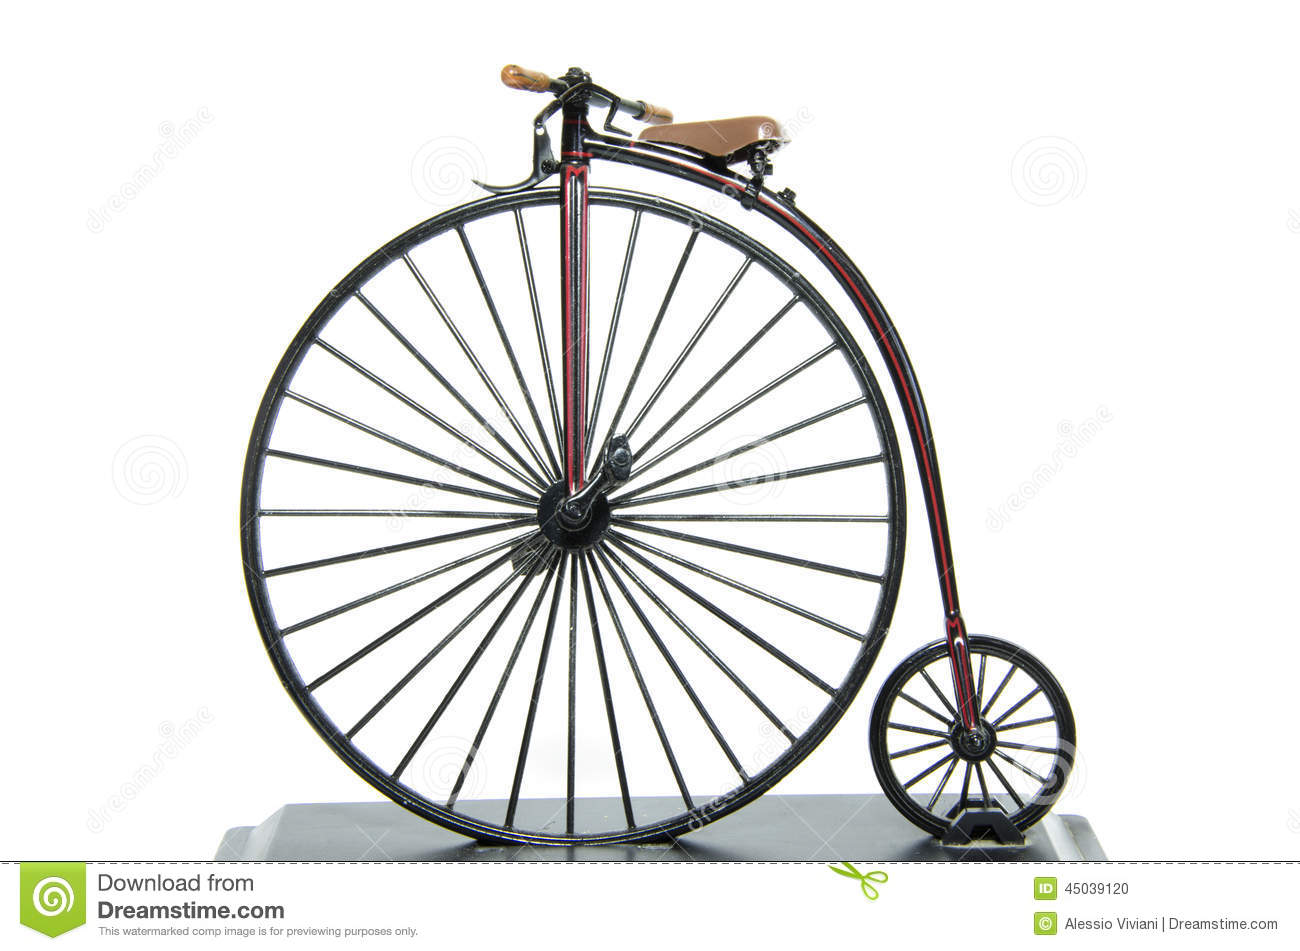 Museum bicycles from 1875 to 1944 Classic Cycle Old fashioned big wheel tricycle